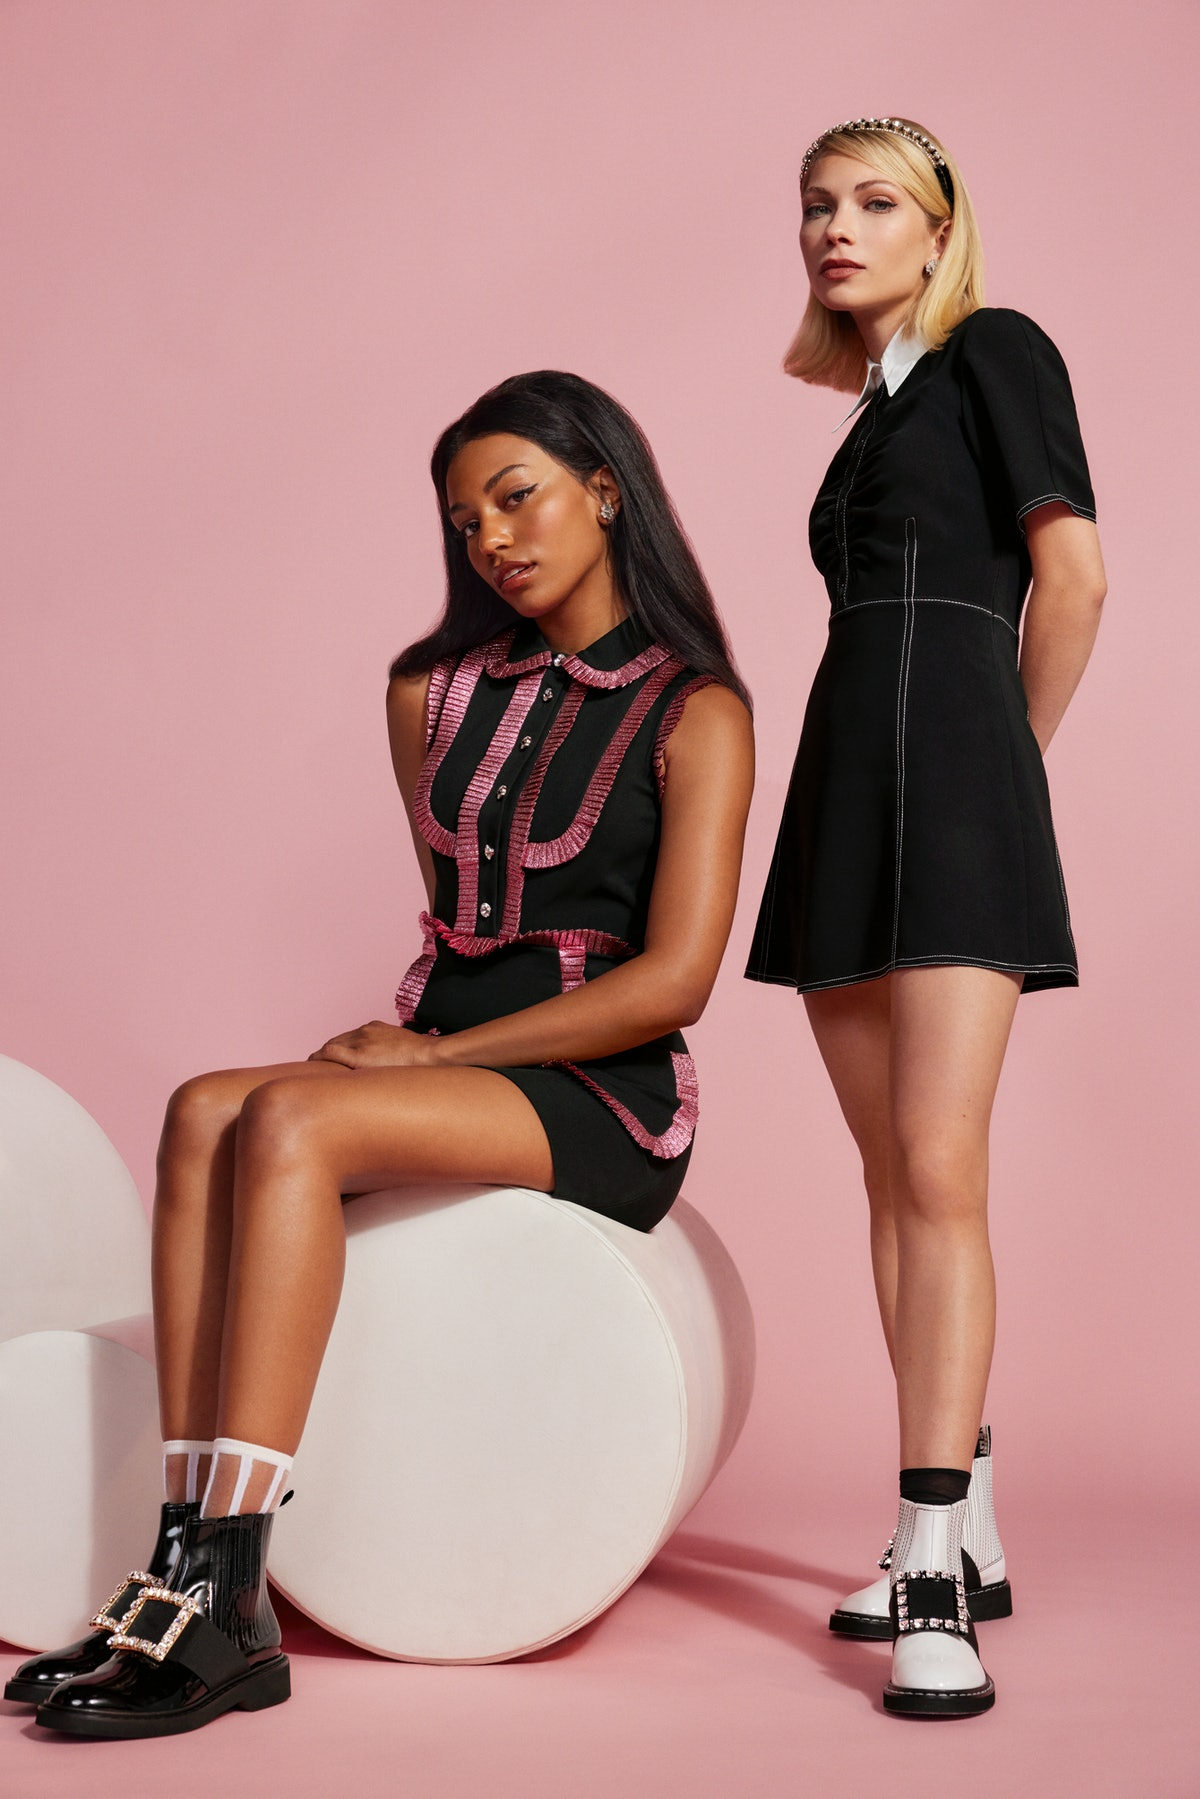 Savannah Lee Smith and Tavi Gevinson appear in Roger Vivier Fall/Winter 2021 campaign.